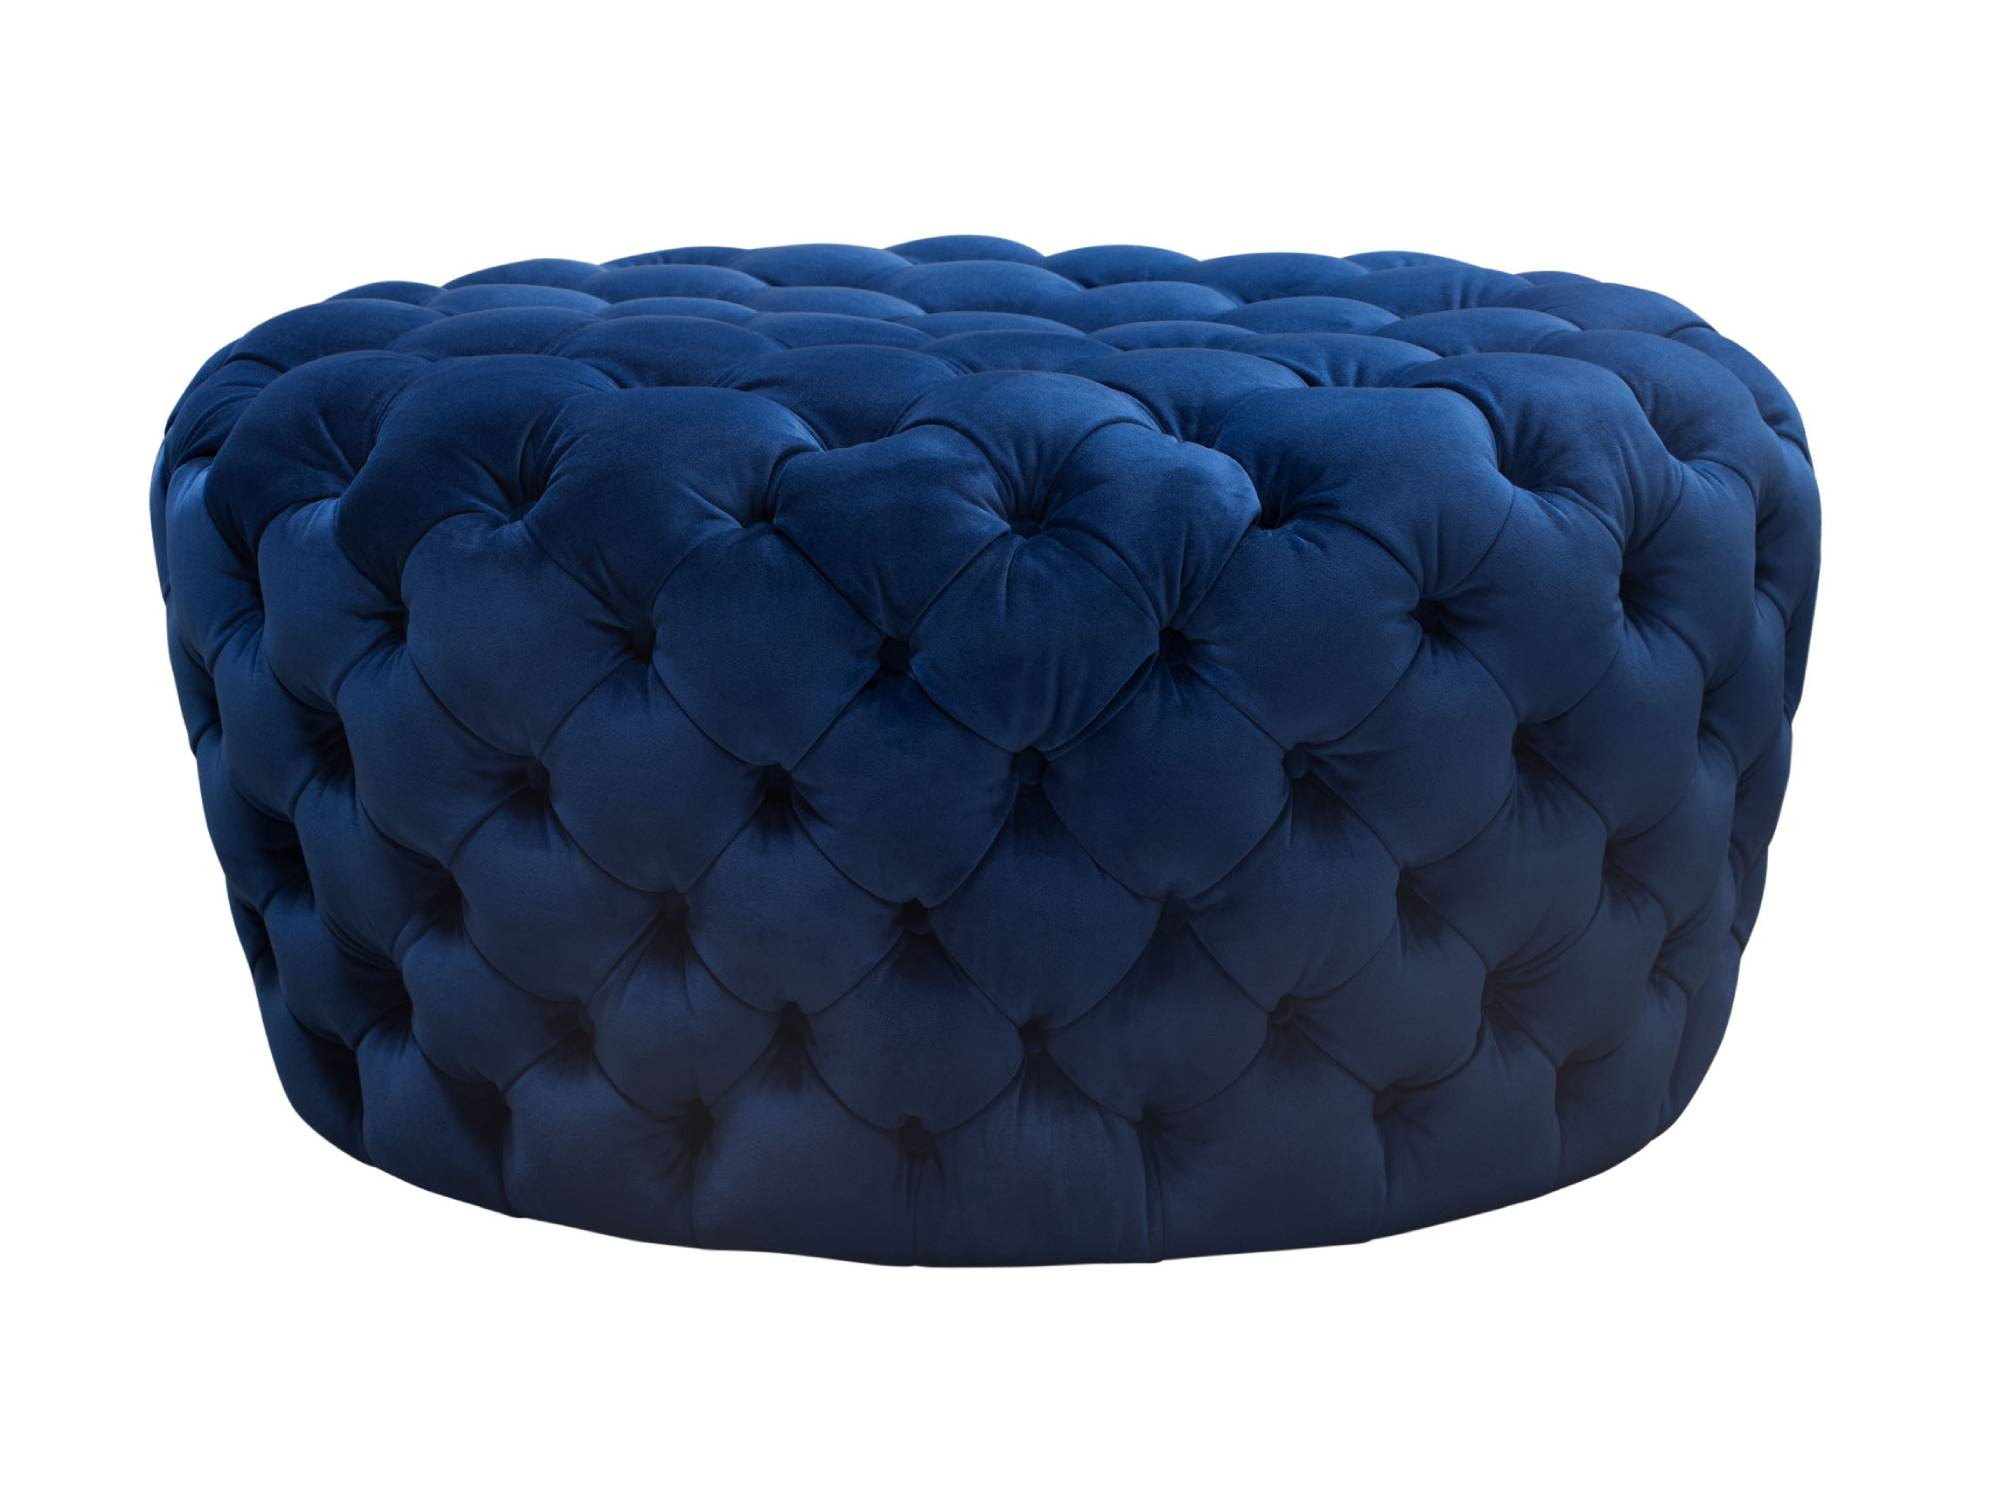 HOLLYWOOD OTTOMAN - NAVY